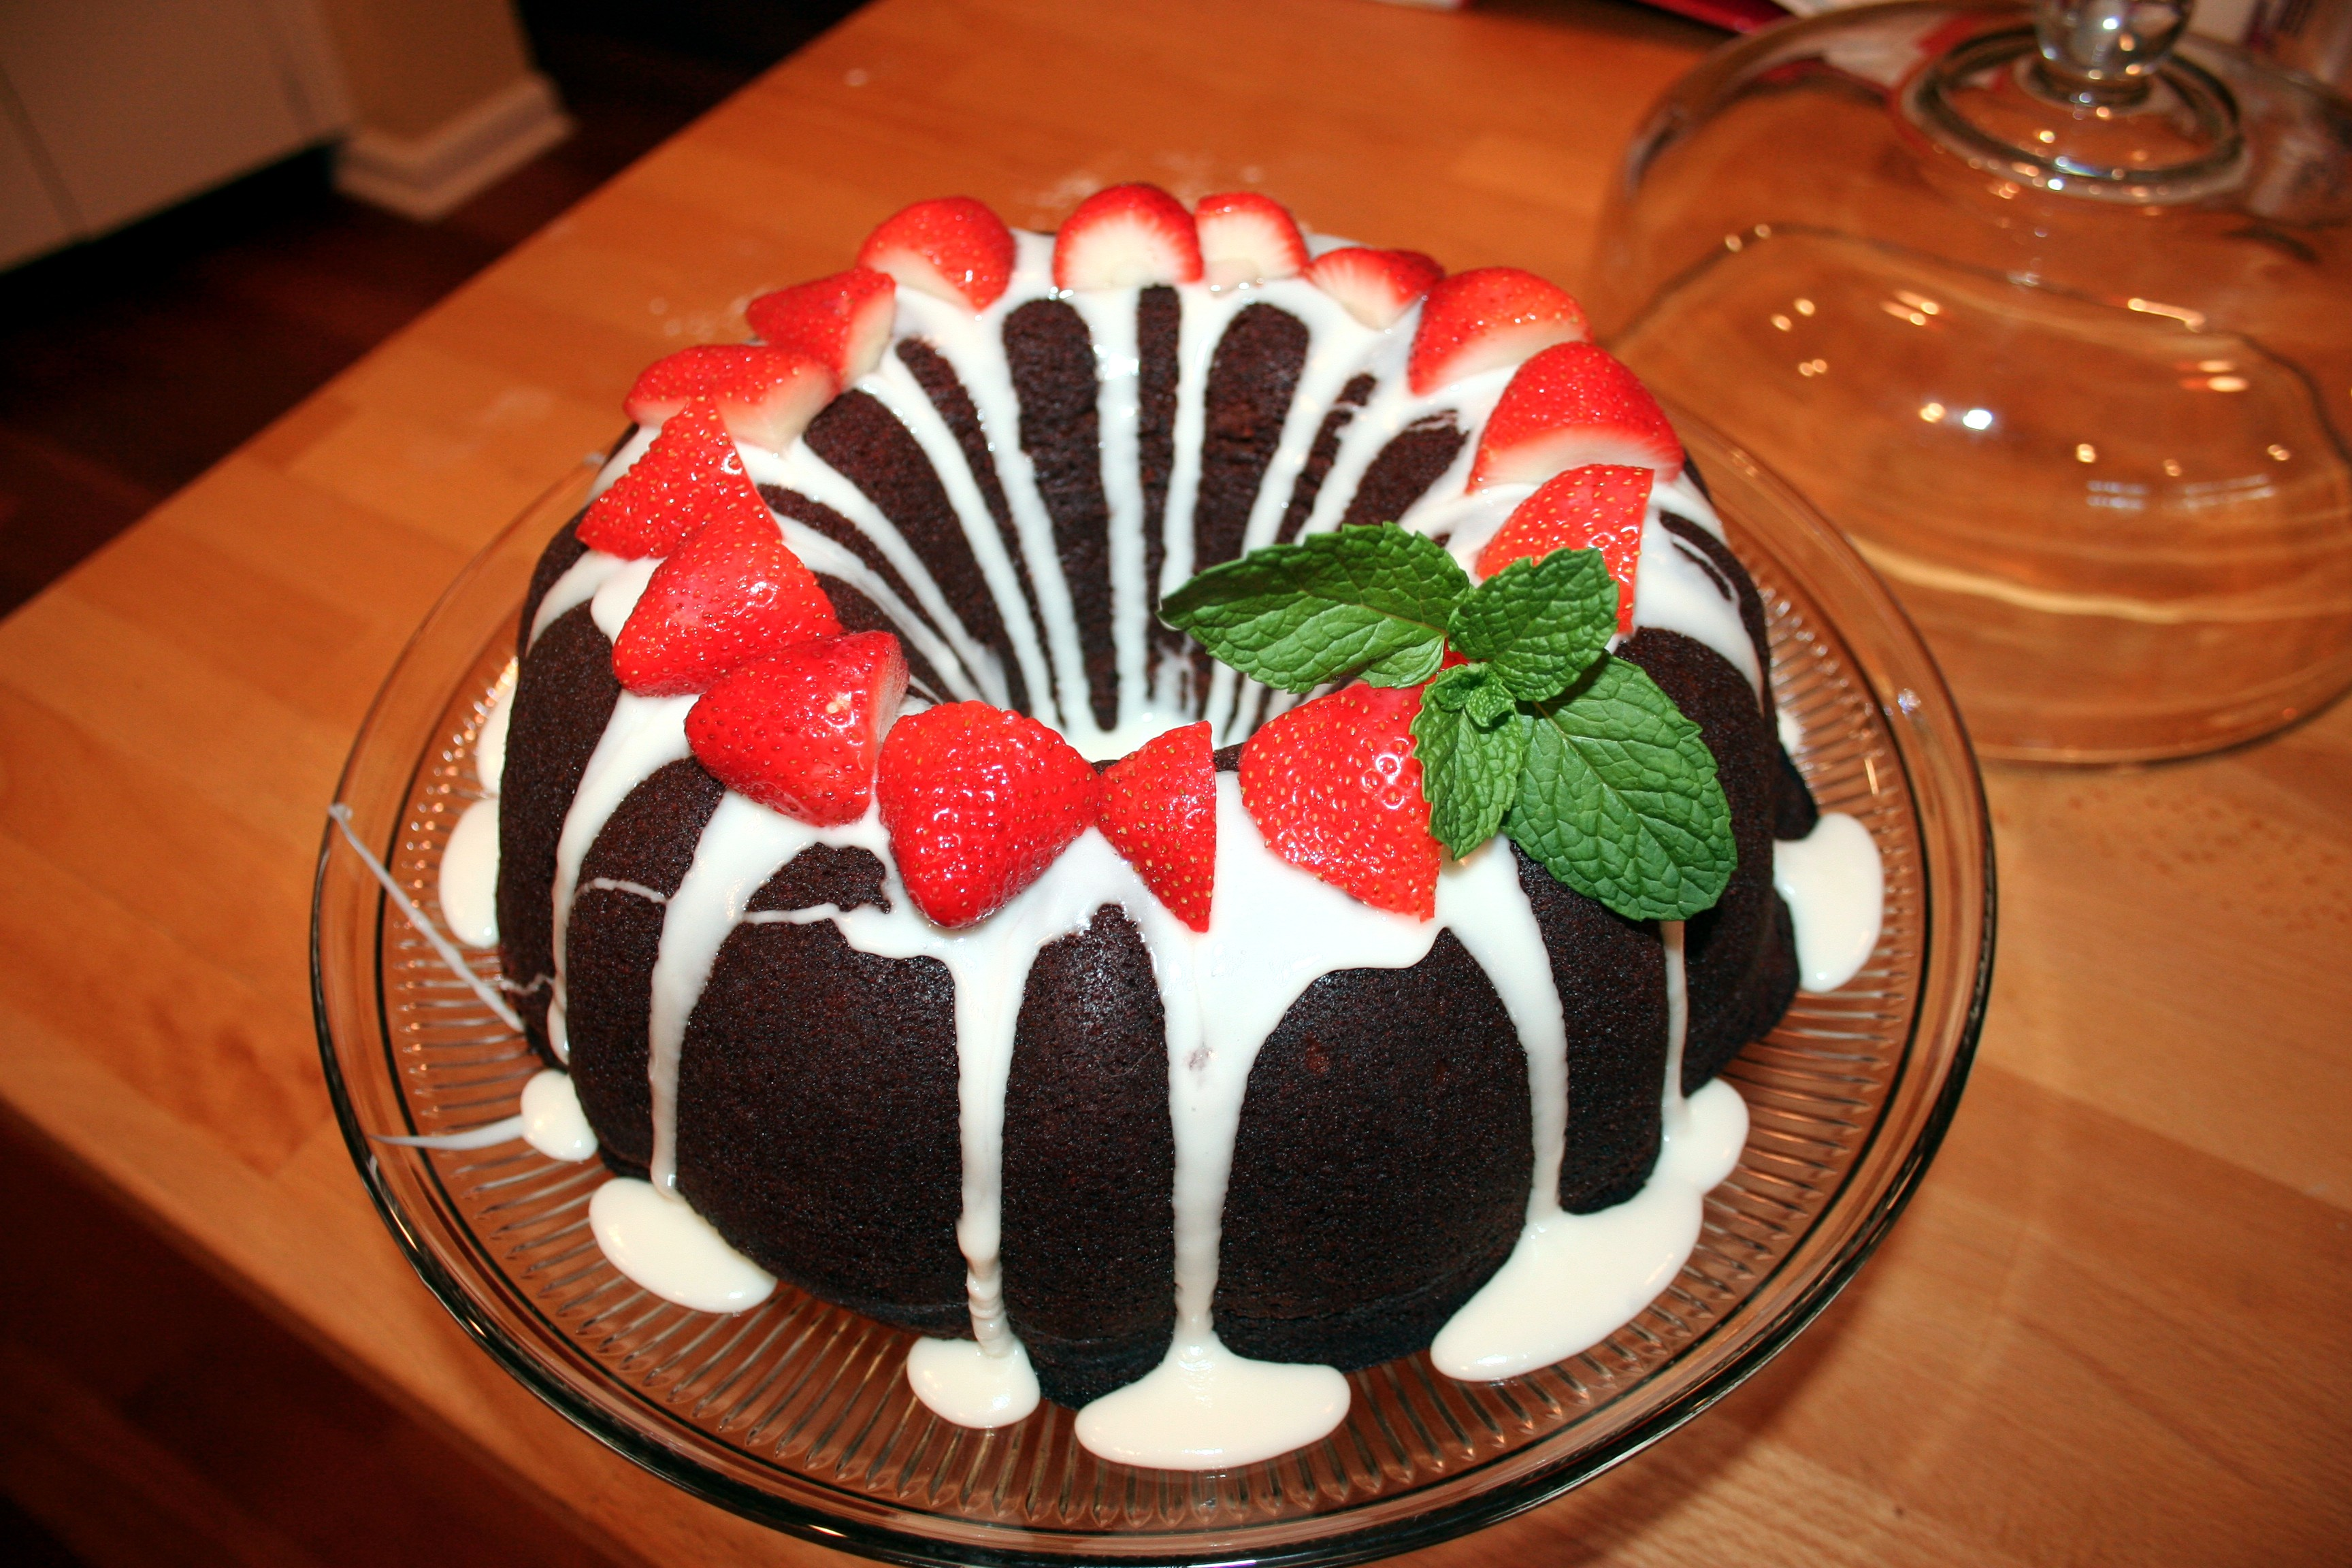 Decorating A Bundt Cake With Strawberries